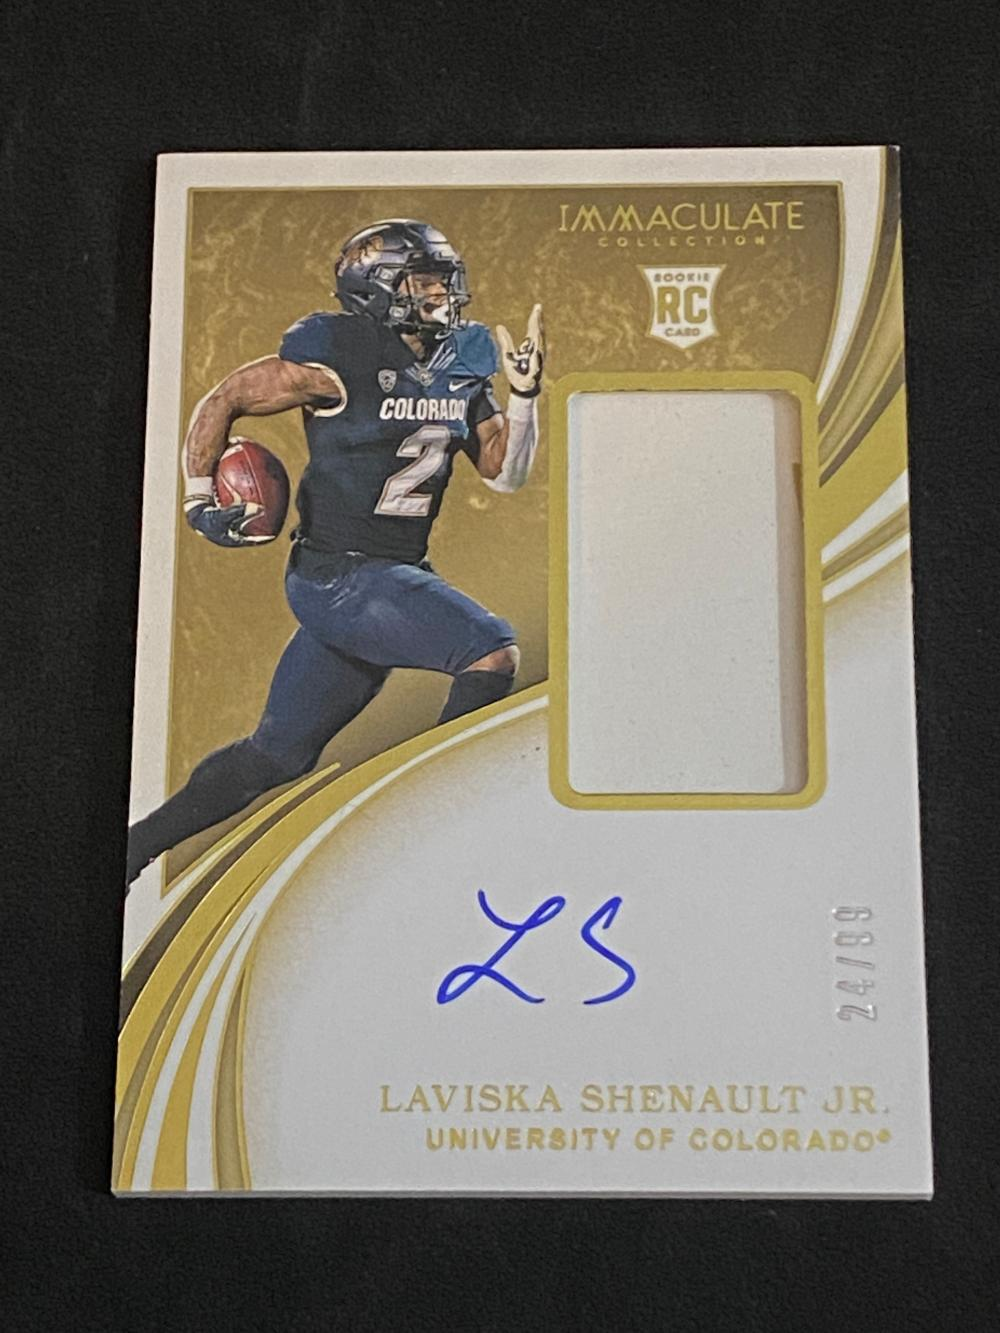 (24/99) 2020 Panini Immaculate Collection Collegiate RC Auto Patch Laviska Shenault Jr. #114 Football Card - Numbered /99